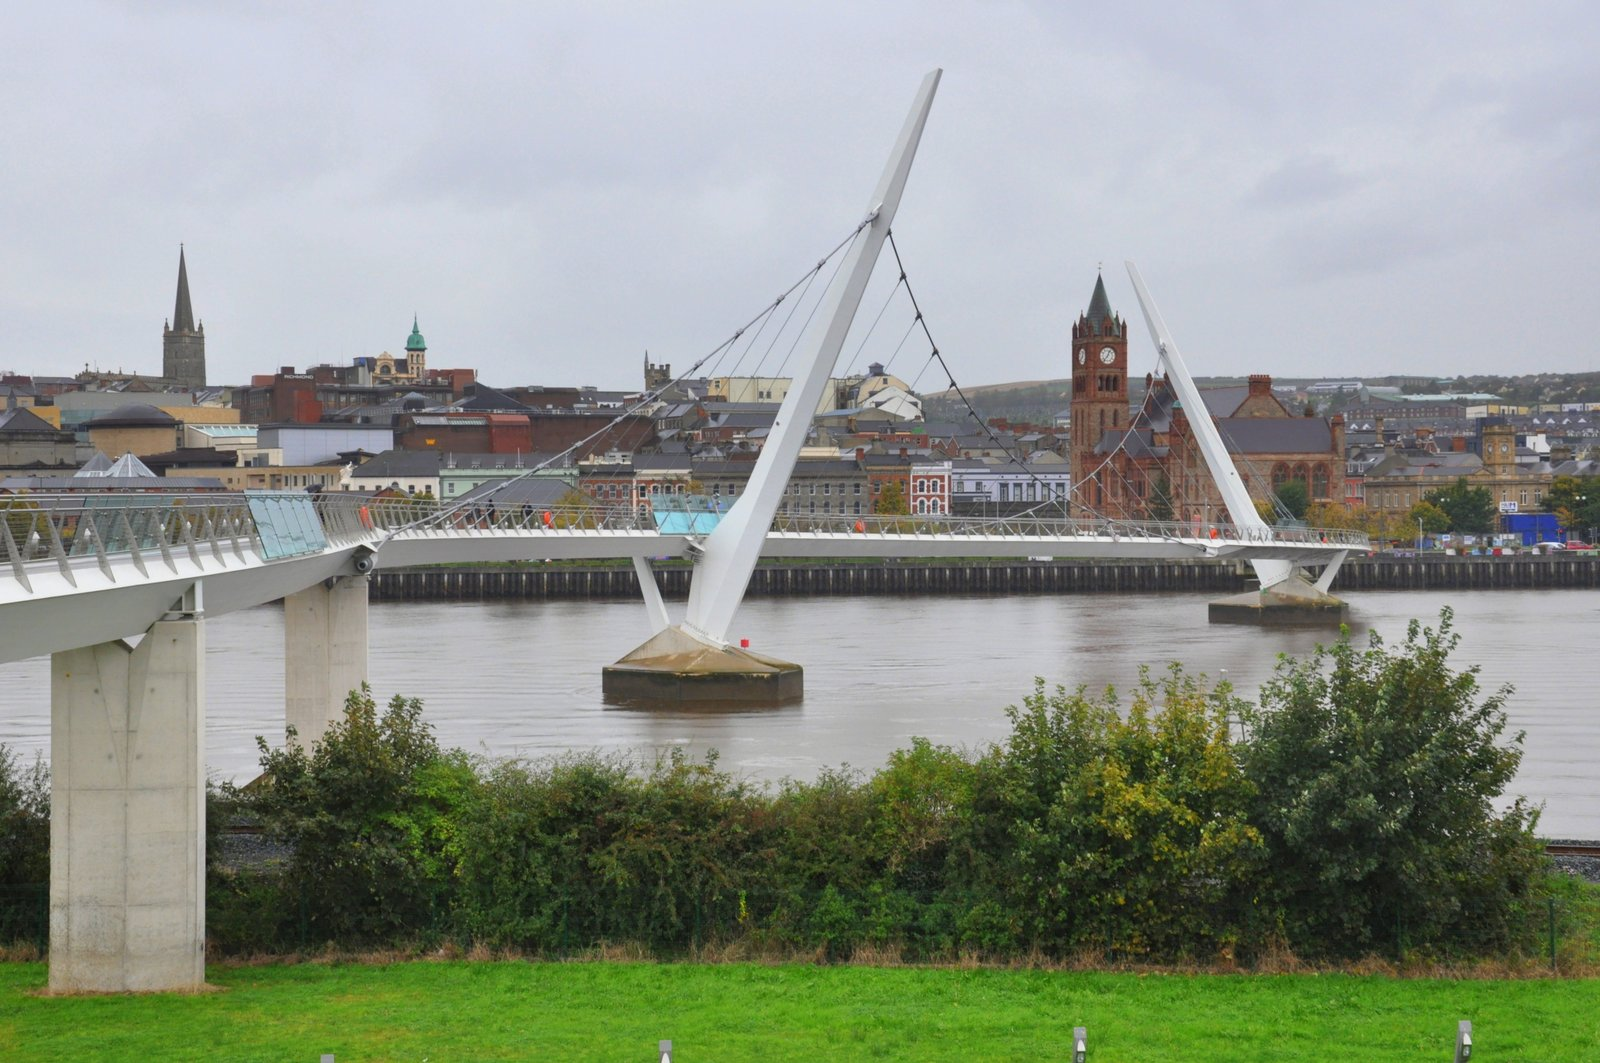 Le Peace Bridge qui relie les deux rives de la Foyle River à Derry